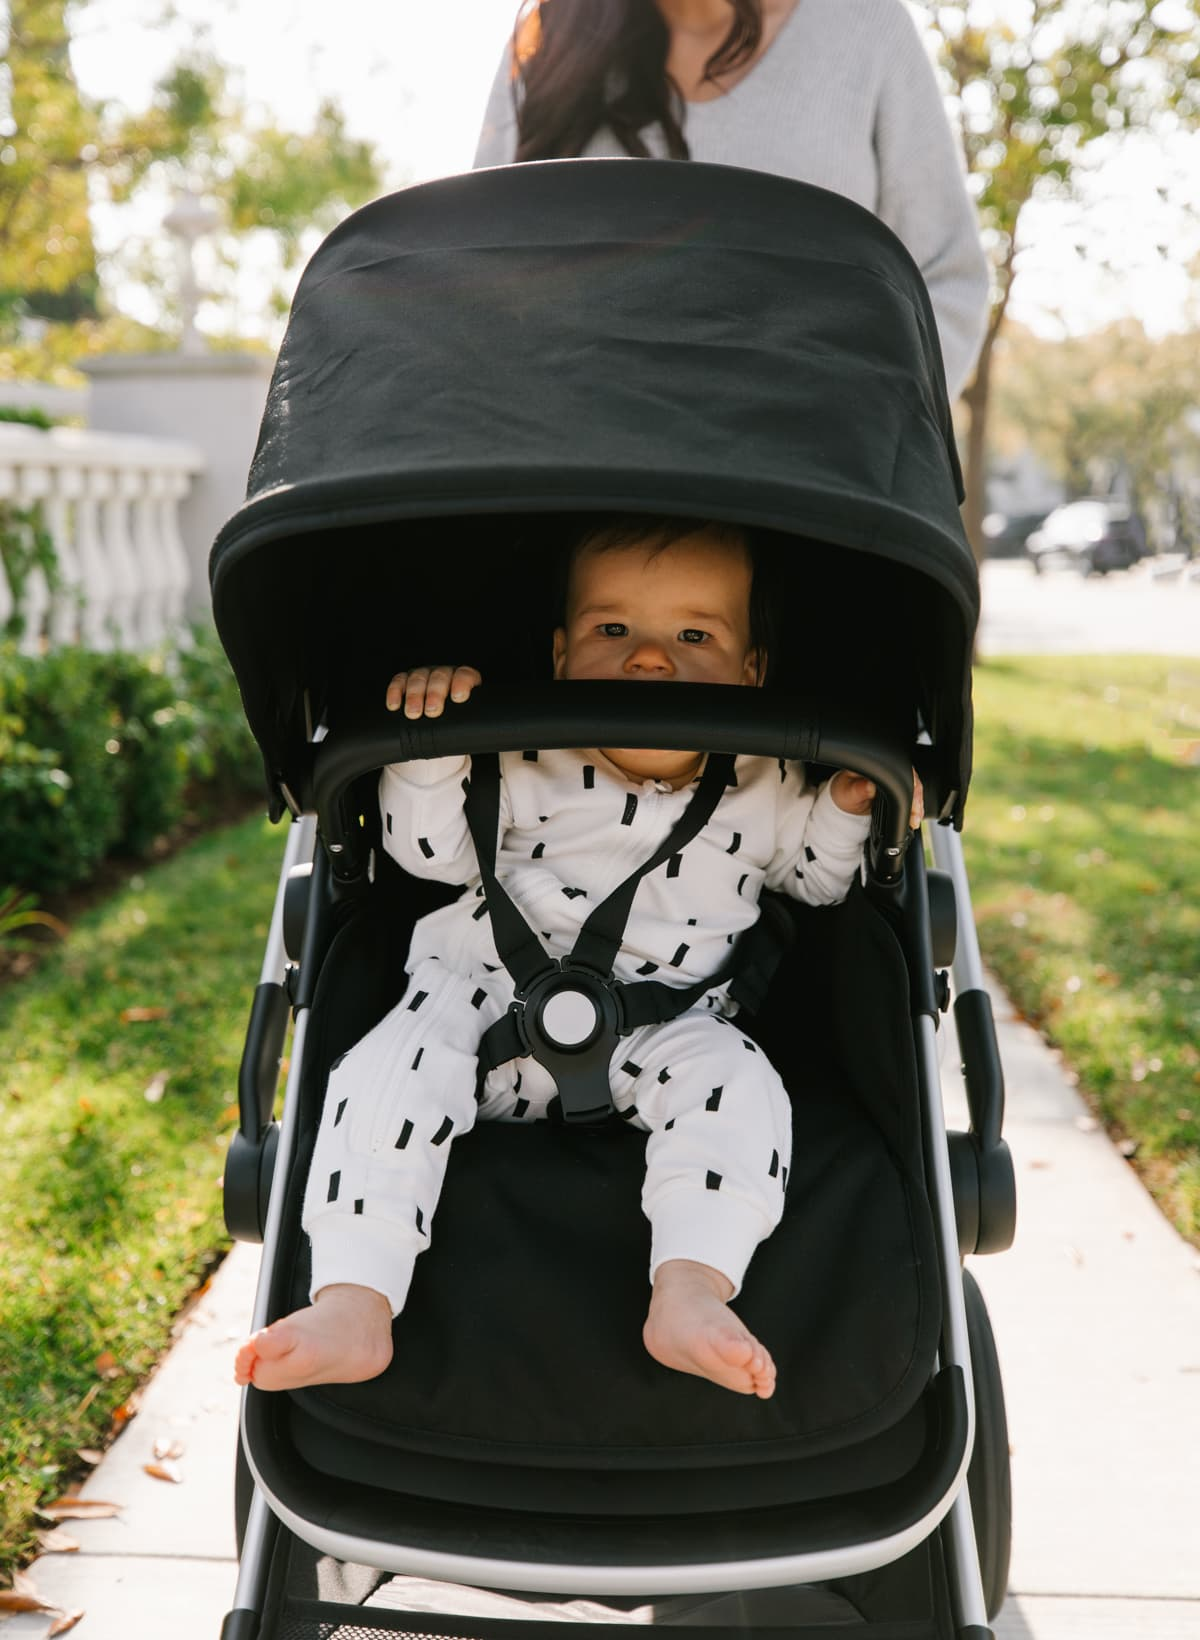 bugaboo stroller review baby gear